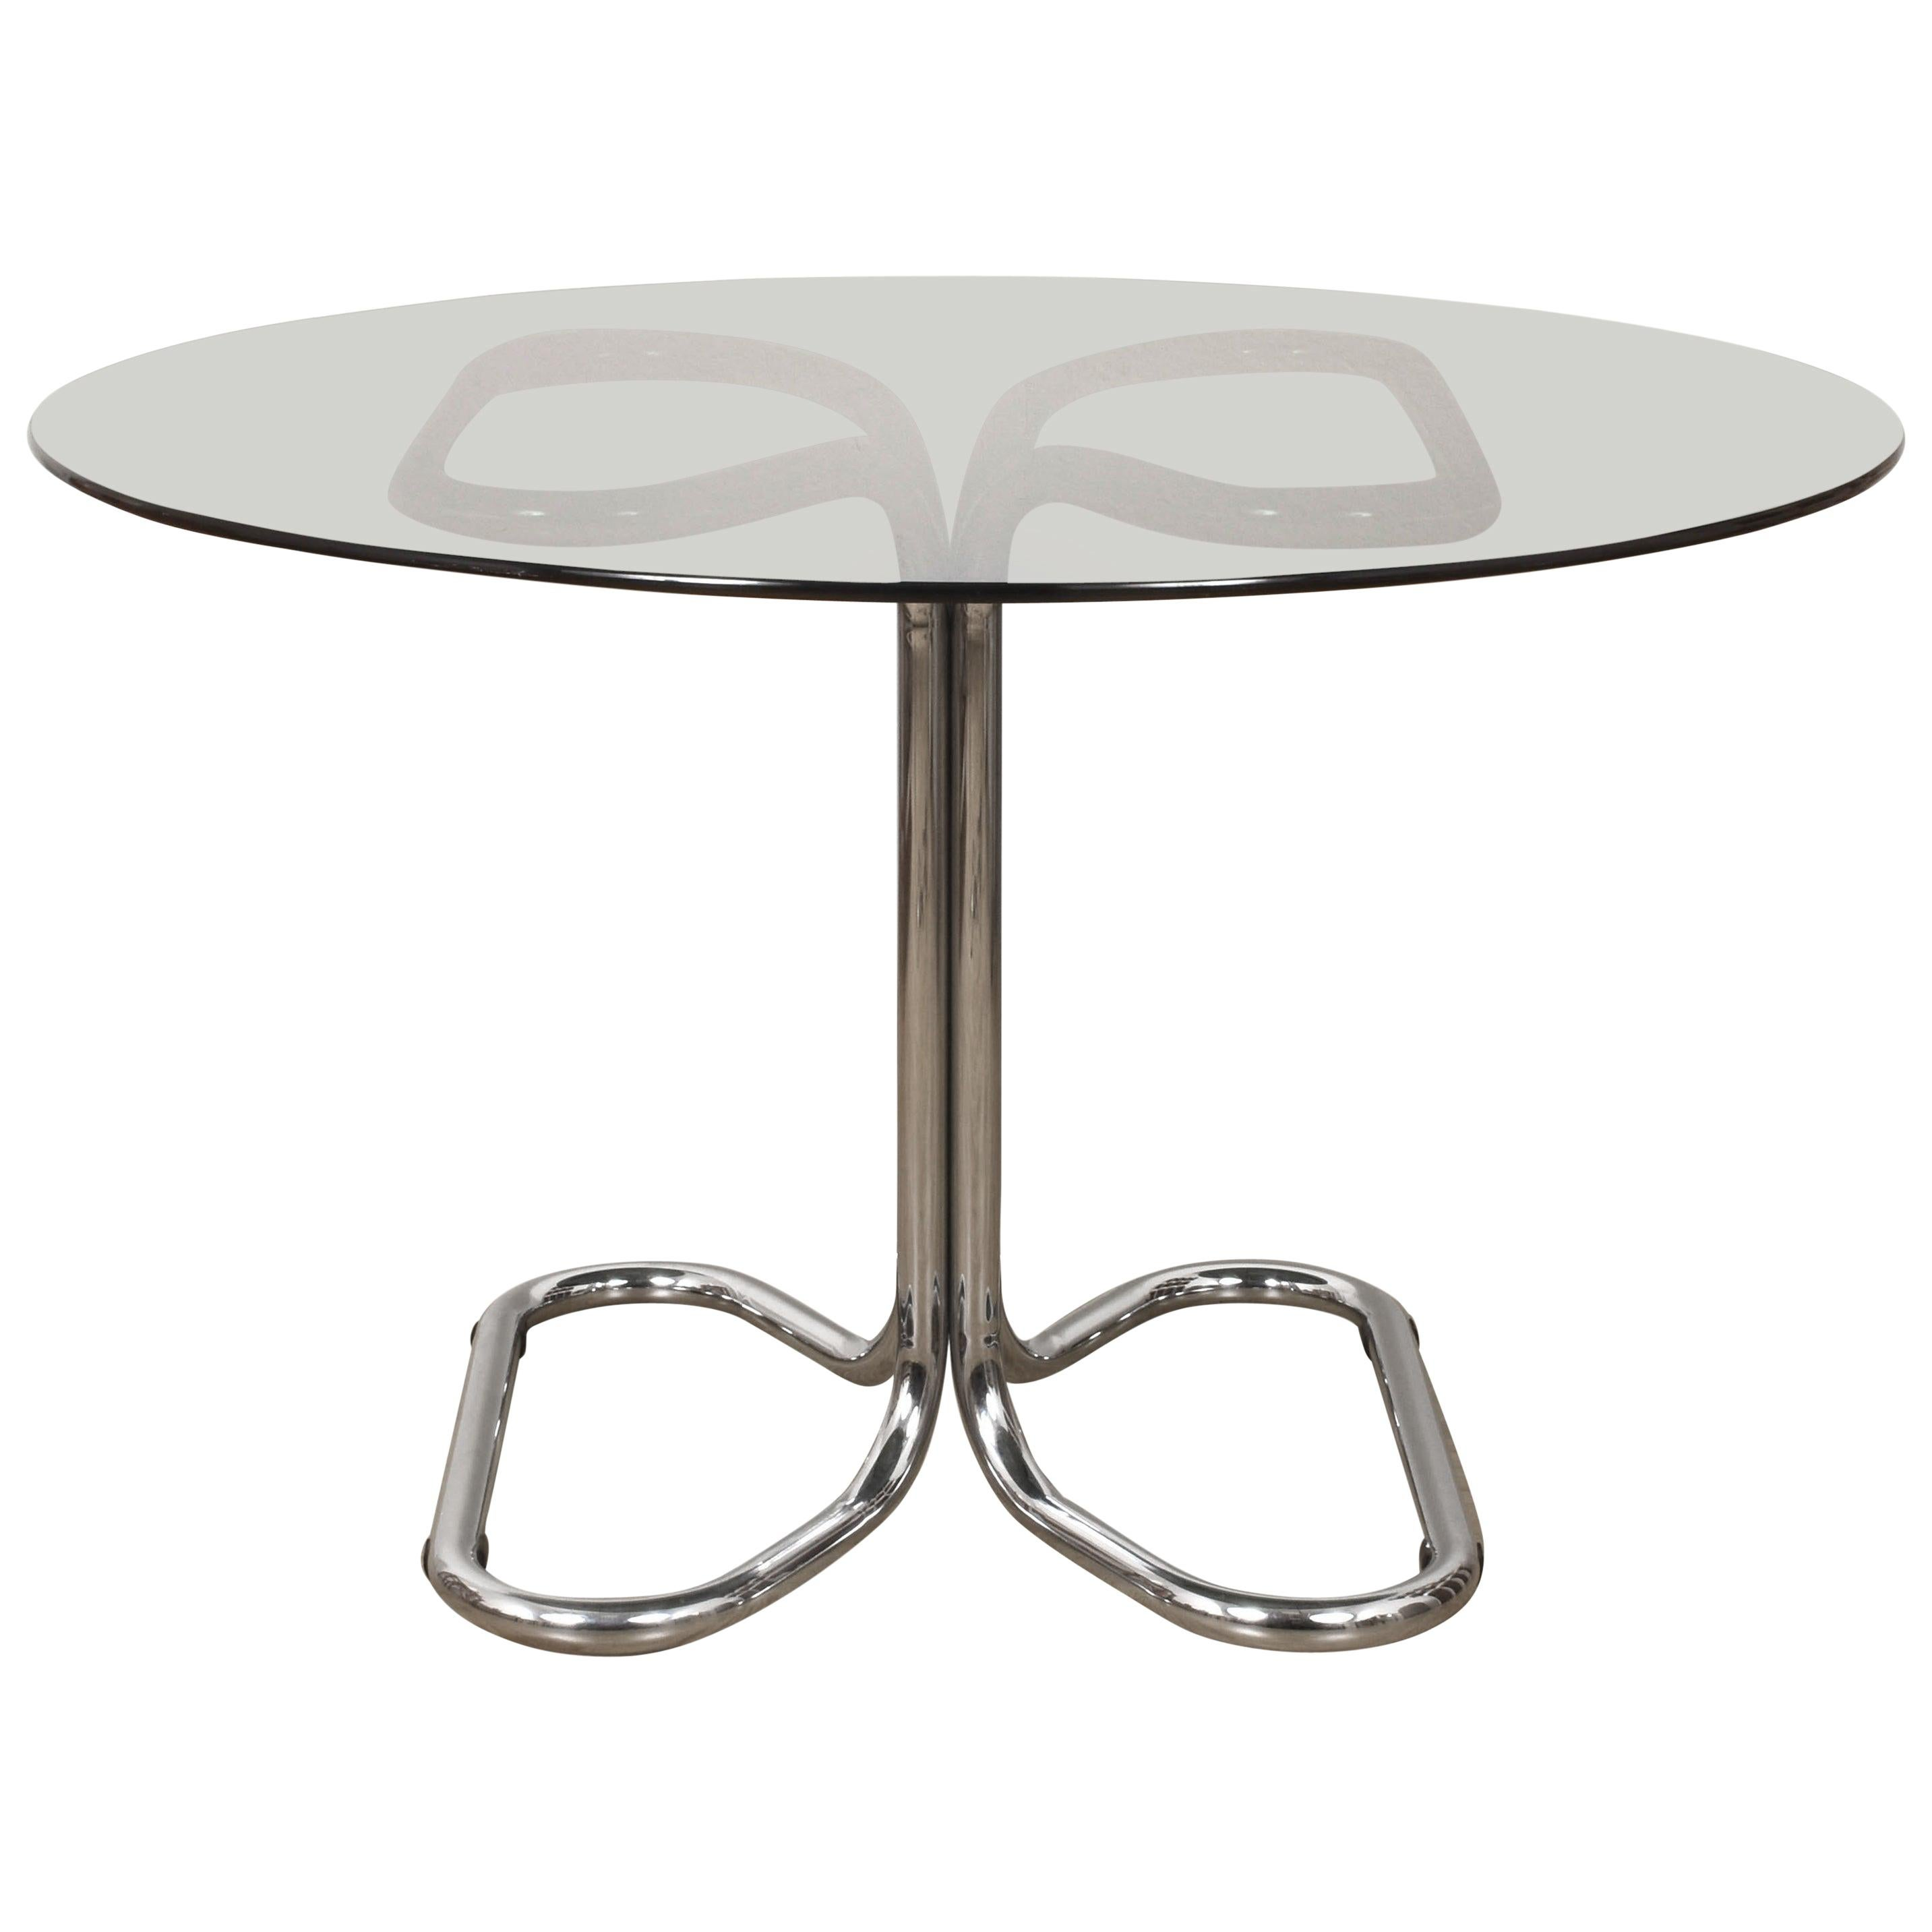 Giotto Stoppino Midcentury Chrome Base and Smoked Glass Top Dining Table, 1970s